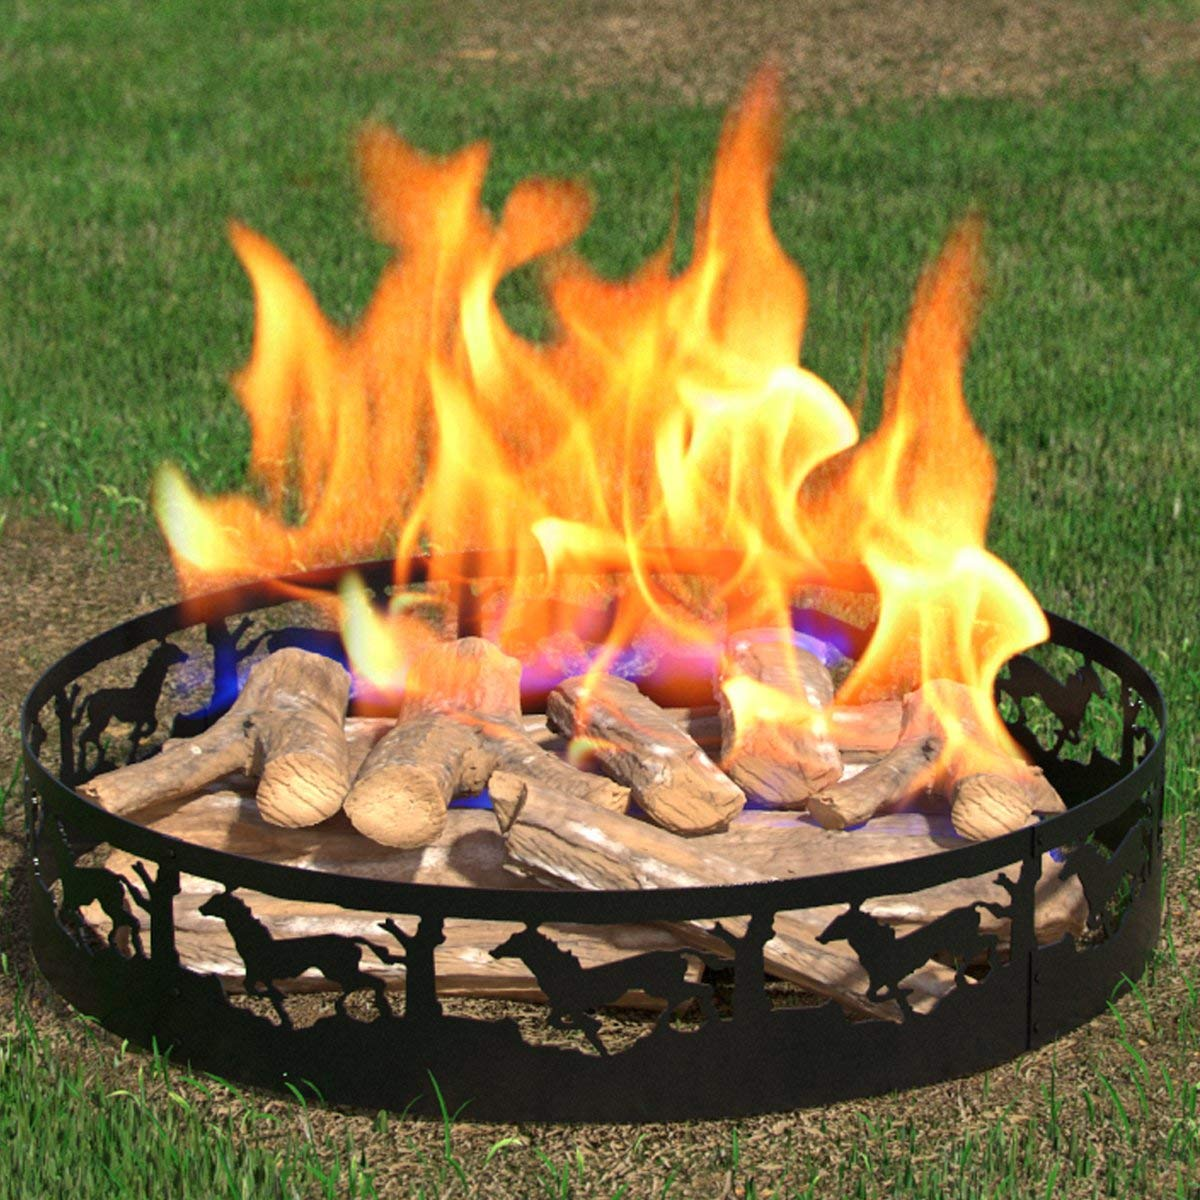 Regal Flame Boston Backyard Garden Home Deer and Trees Light Wood Fire Pit Fire Ring. For RV, Camping, and Outdoor Fireplace. Wo